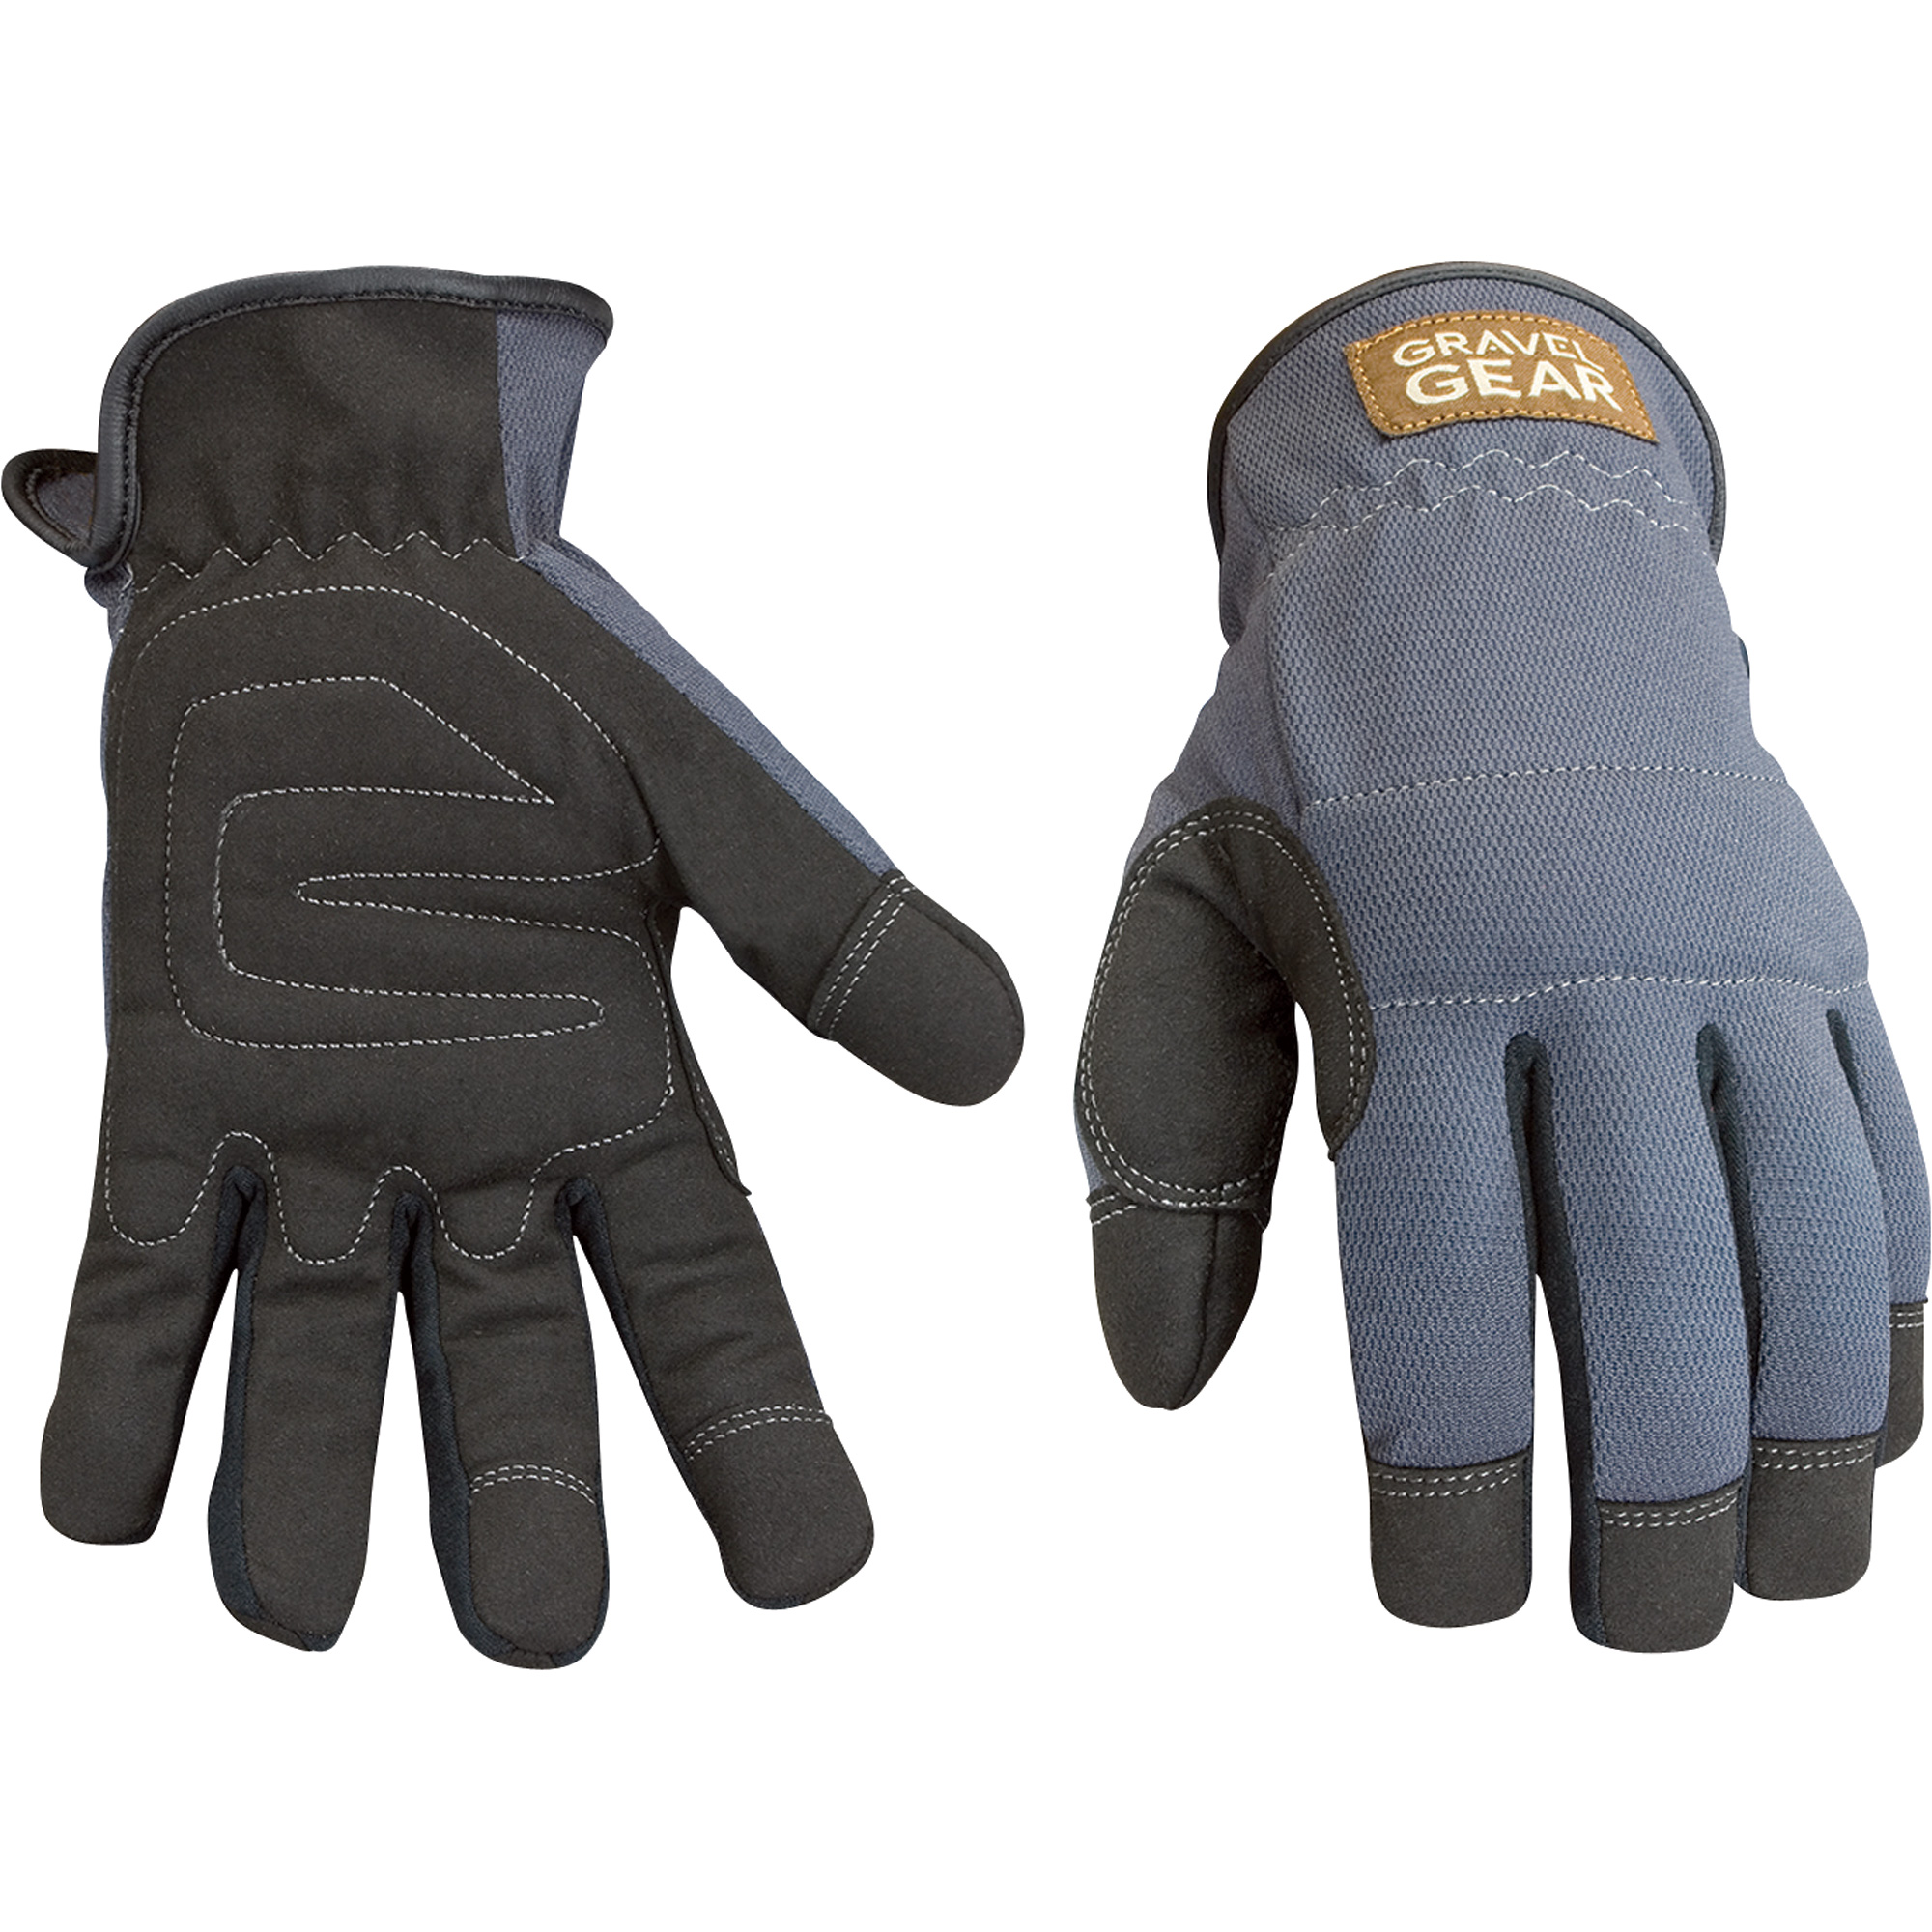 Leather work gloves best price - Durable Leather Work Gloves